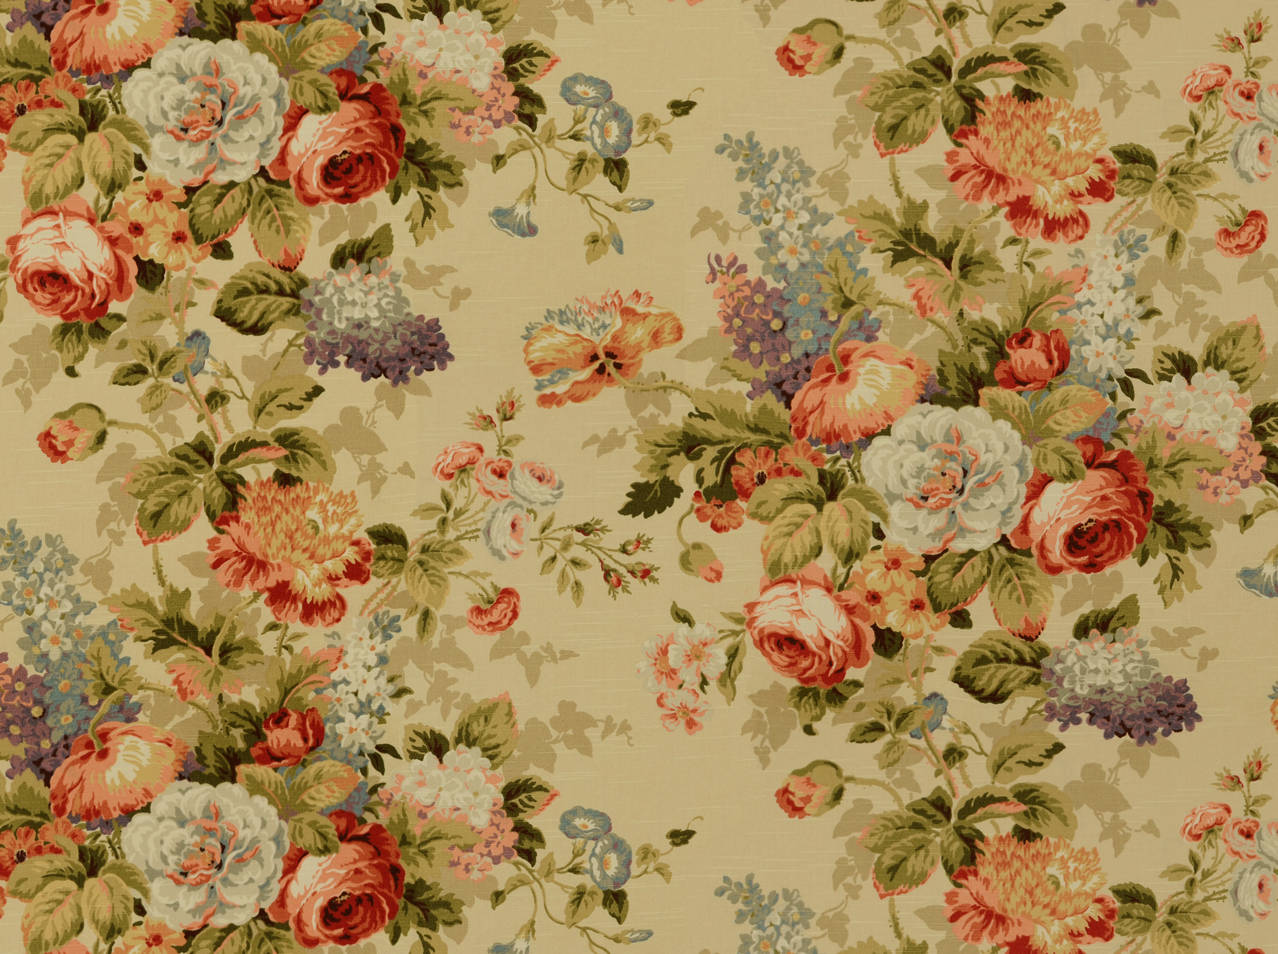 Covington Fabric and Design   Products   Collections   Veranda ...